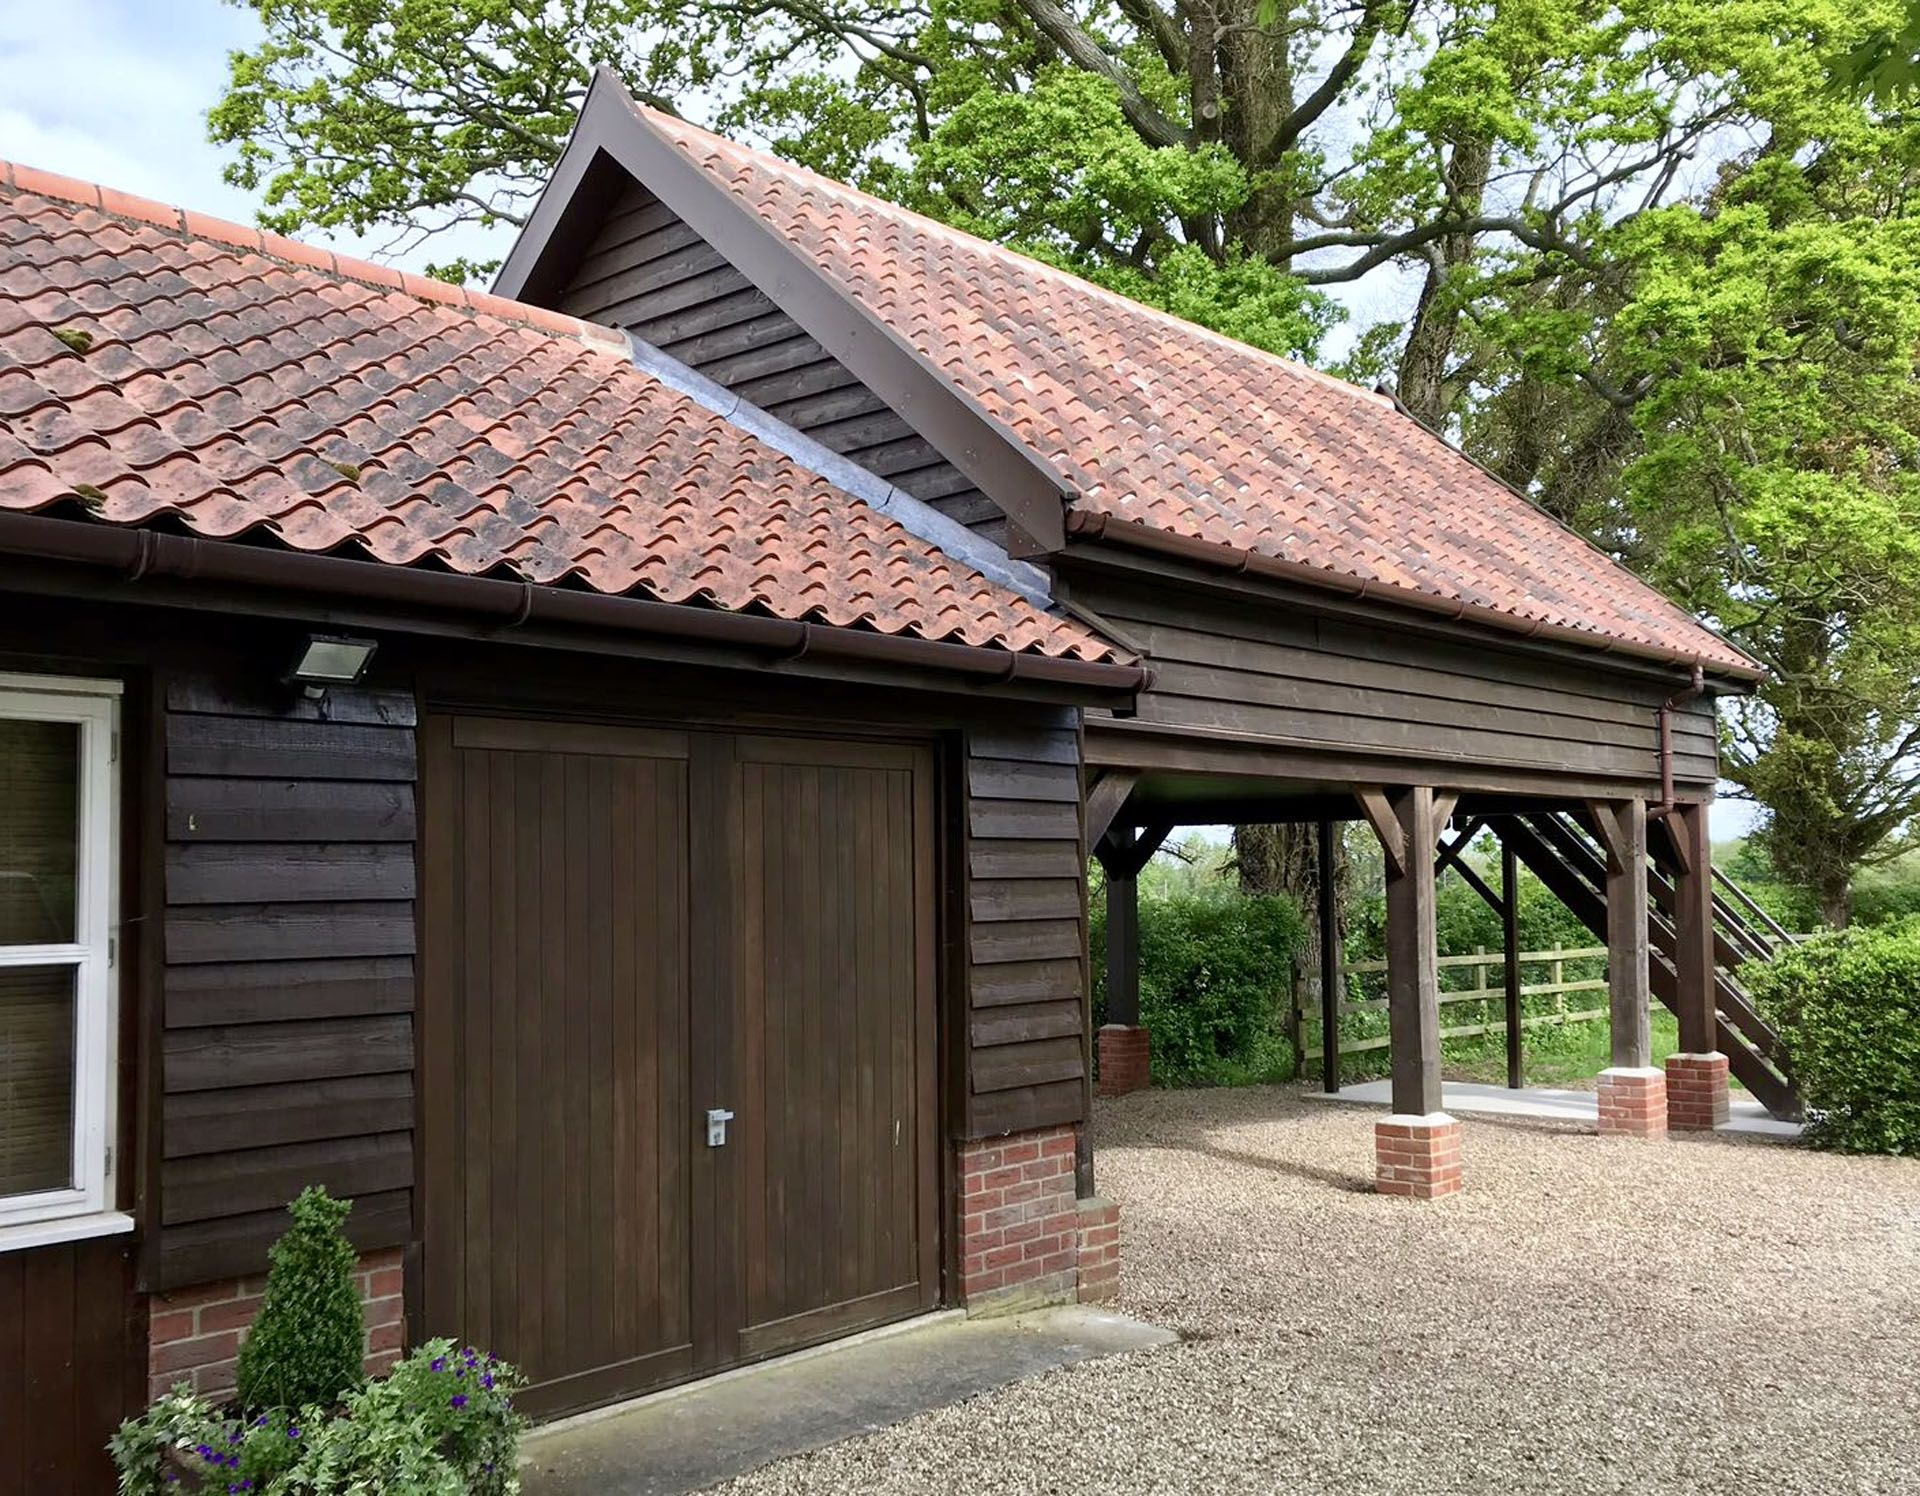 Cartlodges Roger Gladwell Timber Frame Construction in